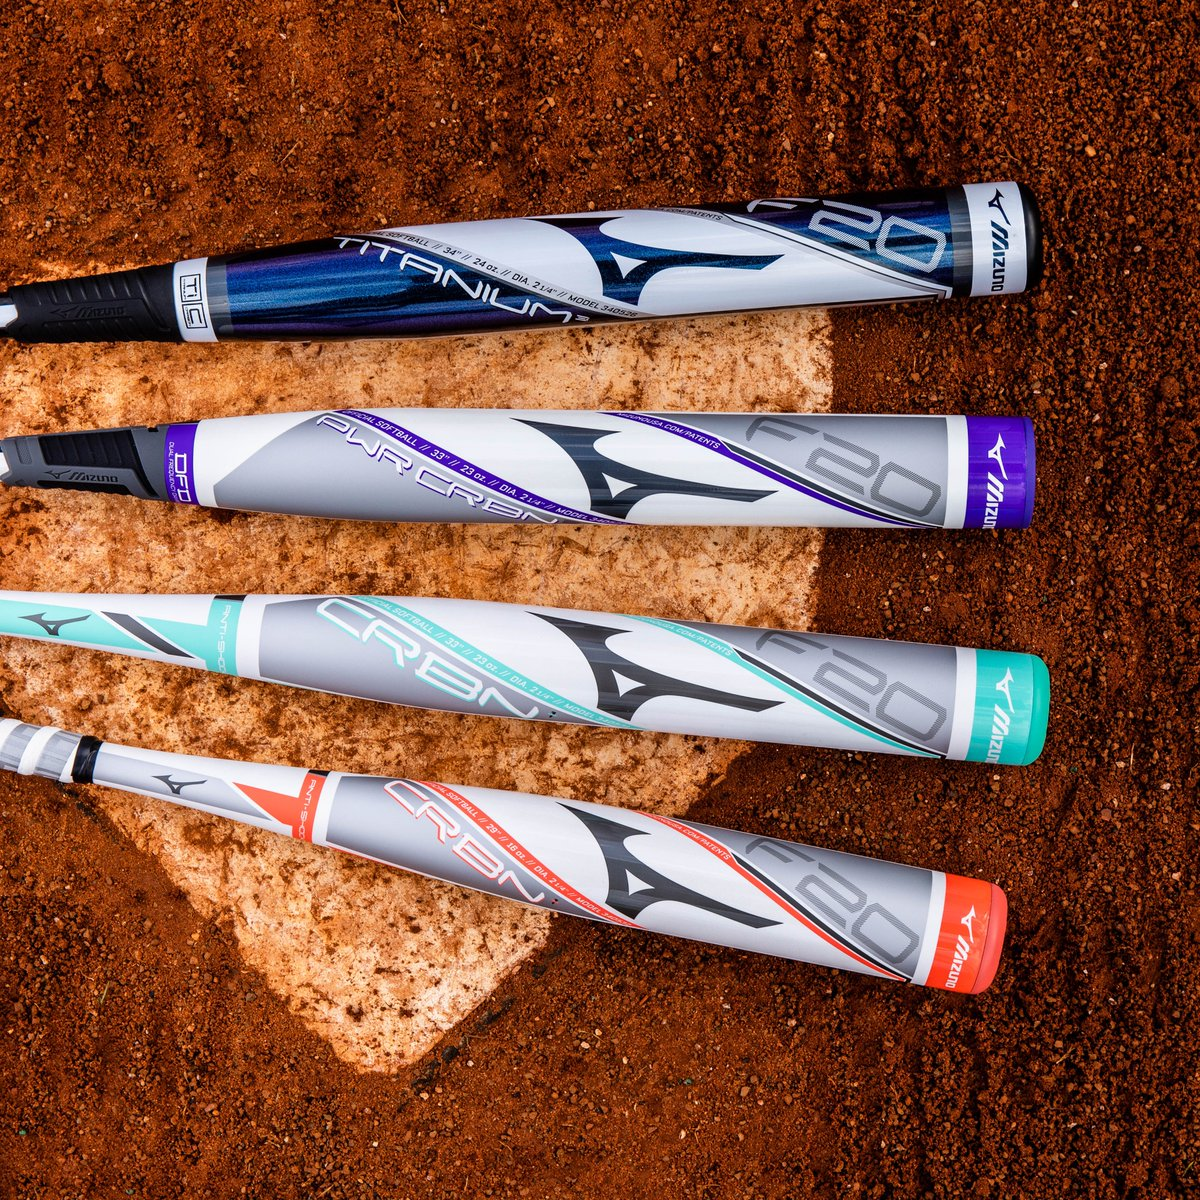 fastpitchbats hashtag on Twitter